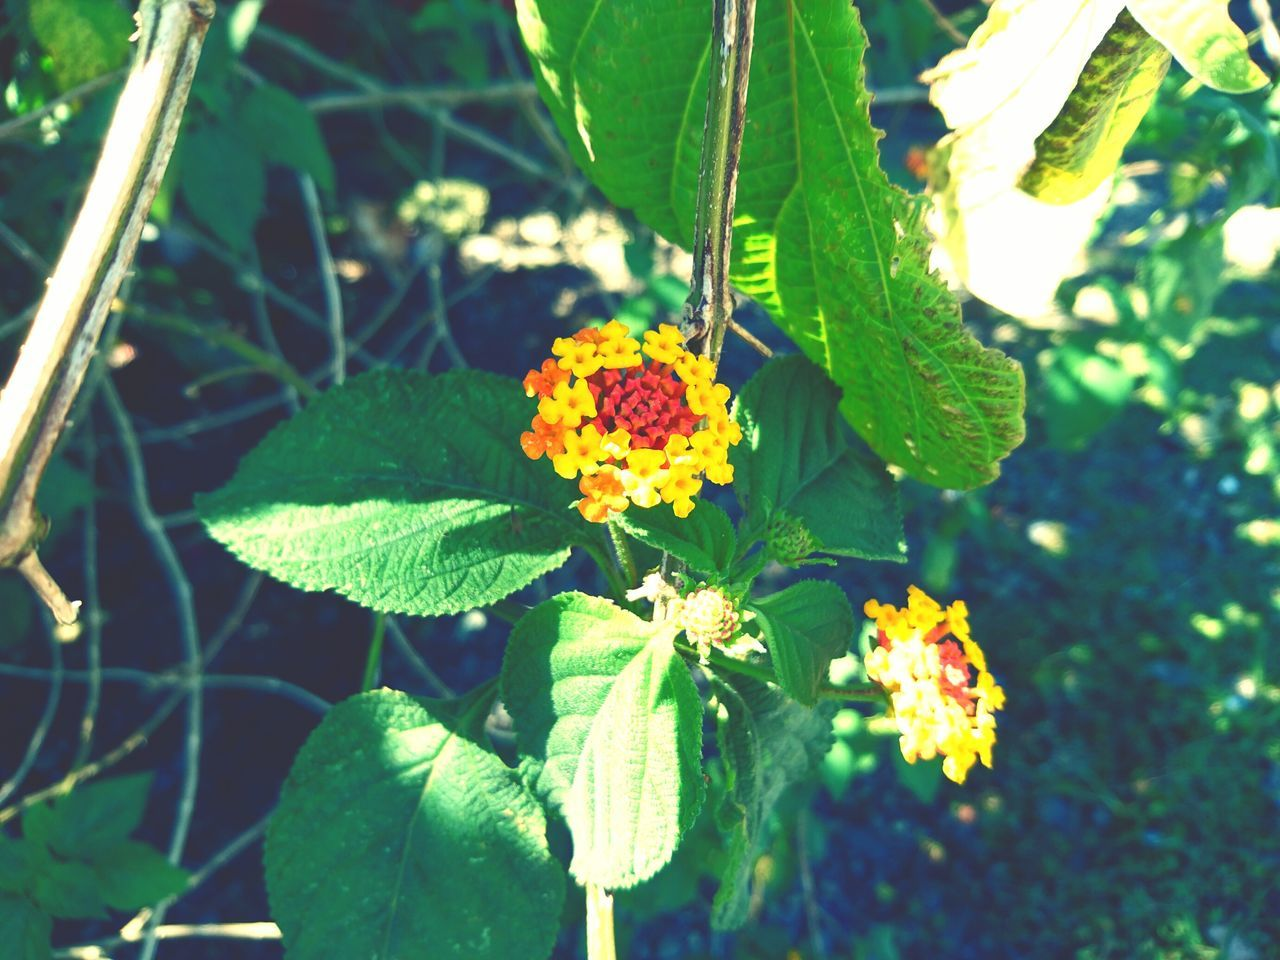 flower, leaf, growth, green color, beauty in nature, nature, fragility, freshness, plant, yellow, outdoors, day, flower head, petal, sunlight, no people, lantana camara, blooming, multi colored, close-up